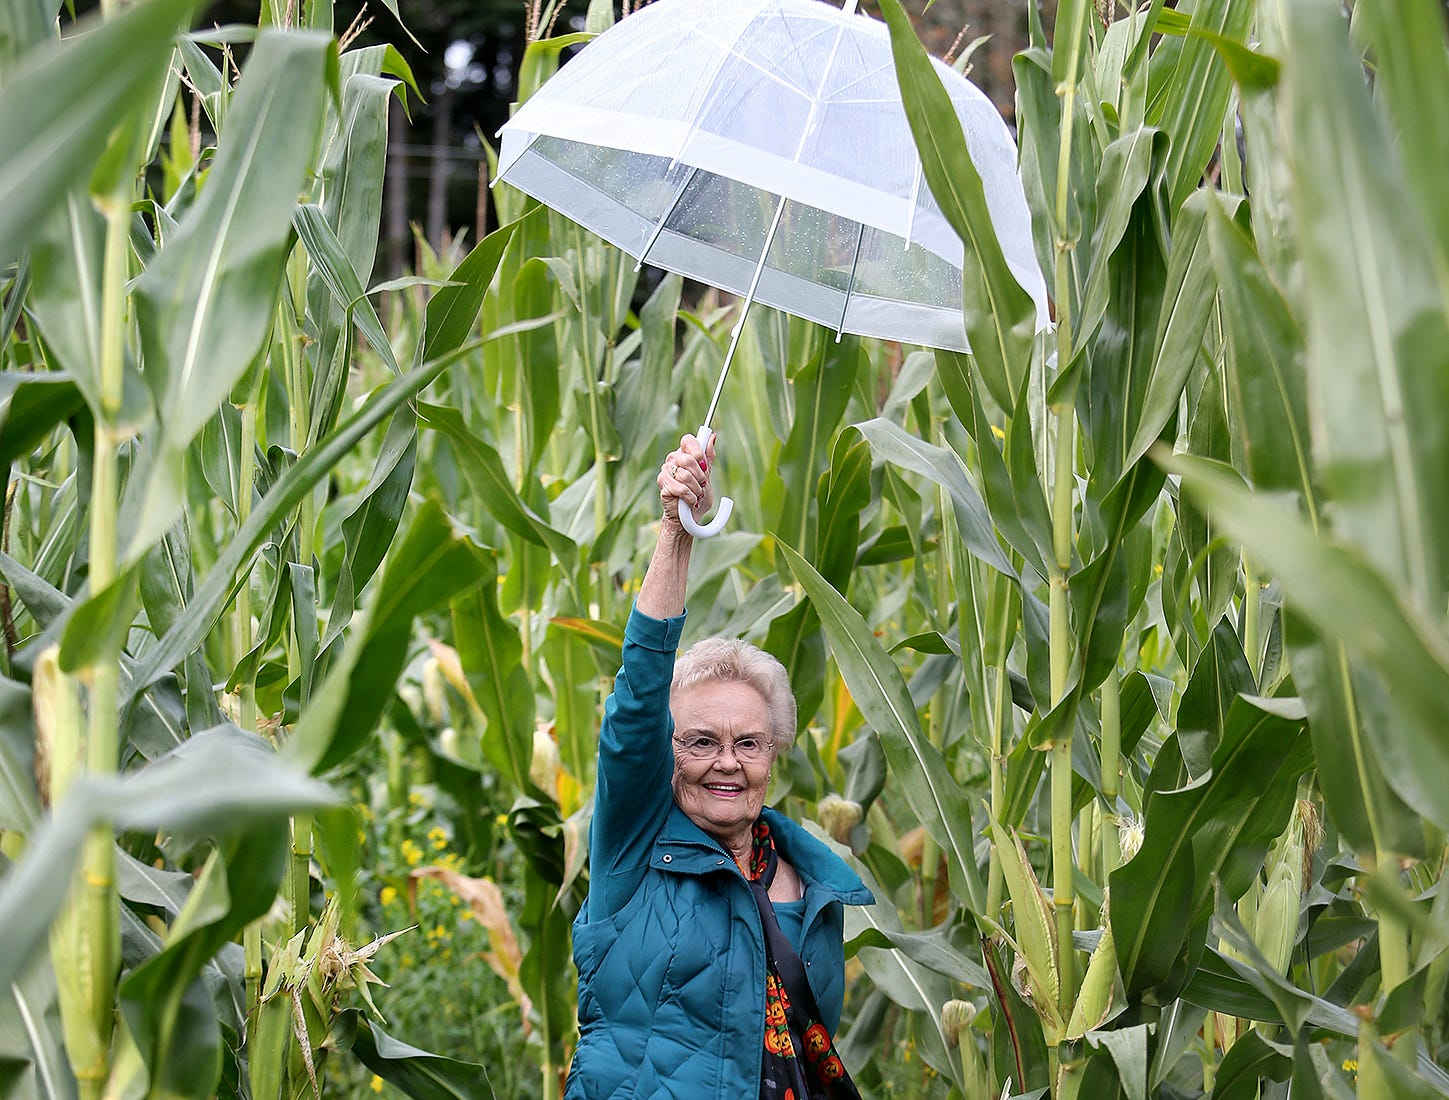 Carol Hostetter of Bremerton puts her umbrella up high to get through the corn stalks in the corn maze at Pheasant Fields Farms in Silverdale on Monday. The maze is open daily from 10 a.m. until 6 p.m . until November 1.